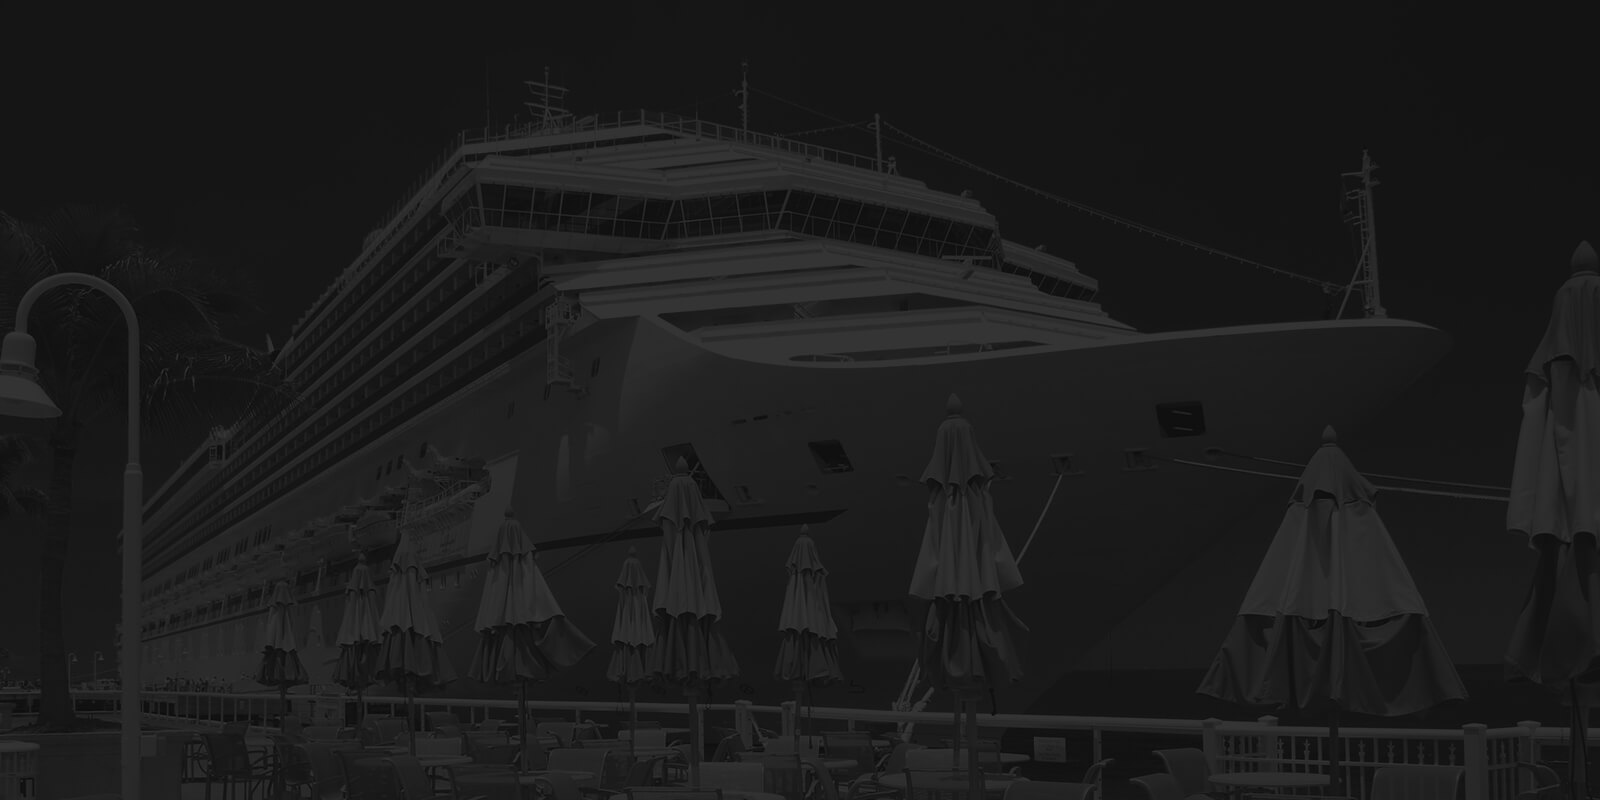 Cruise ship docked at a port